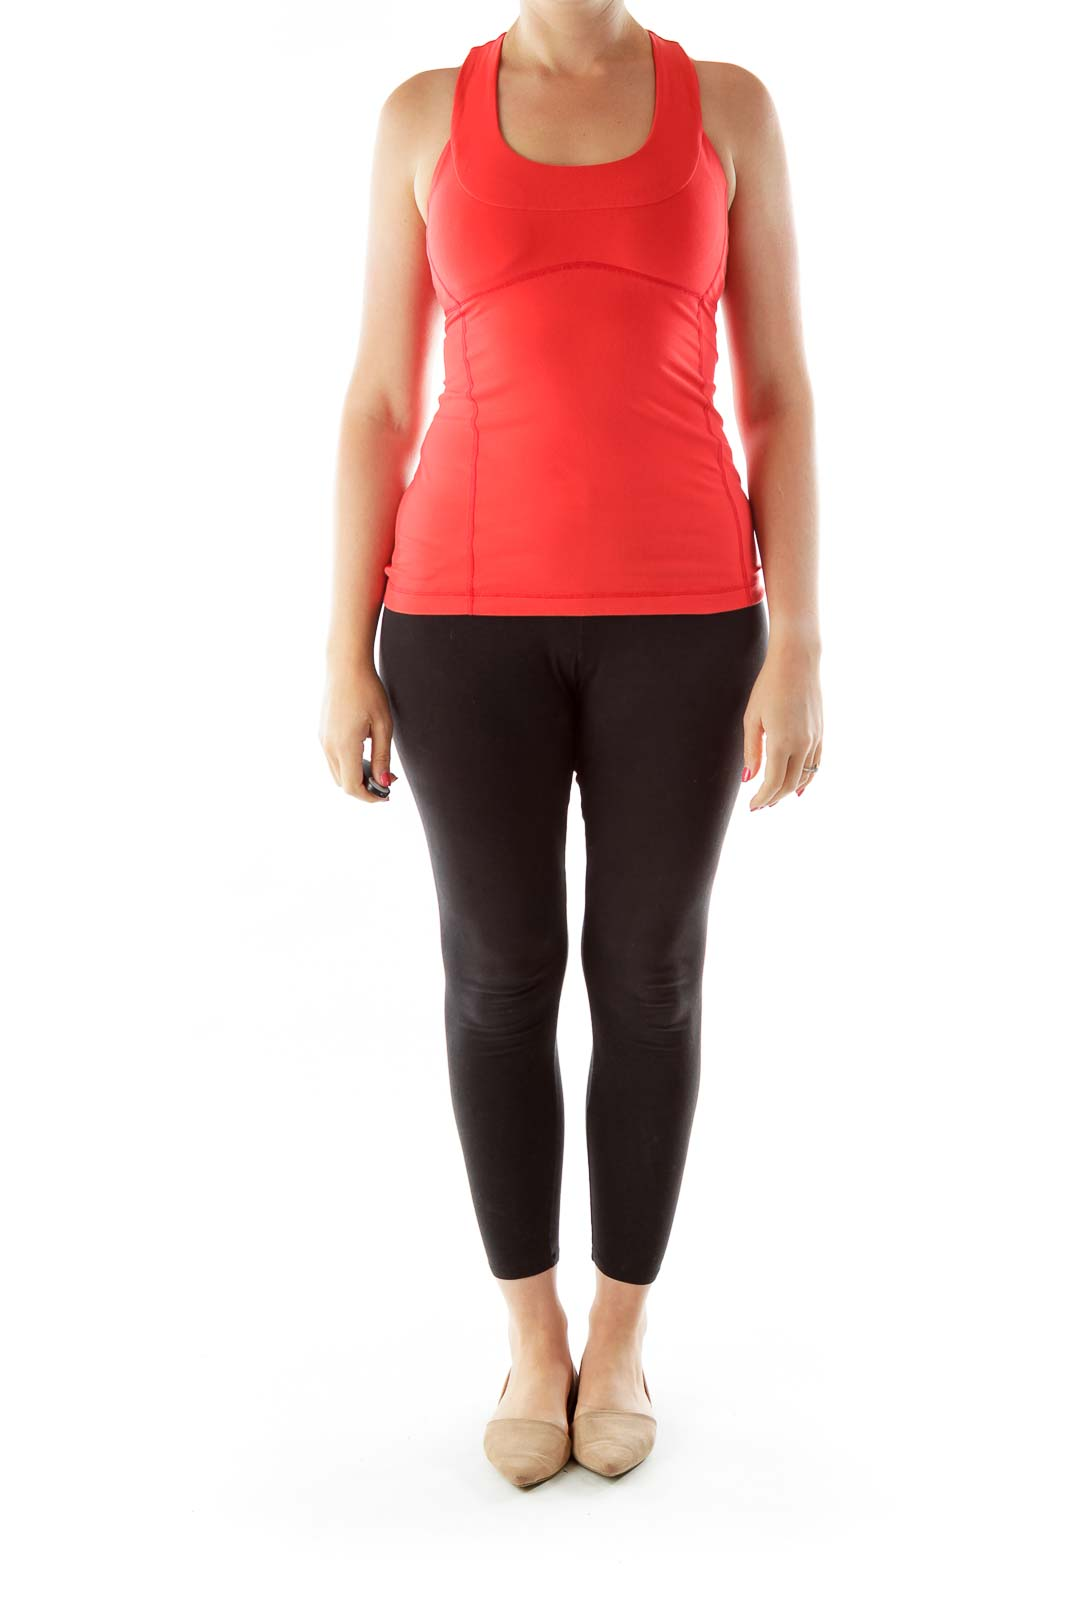 Red Round Neck Yoga Top